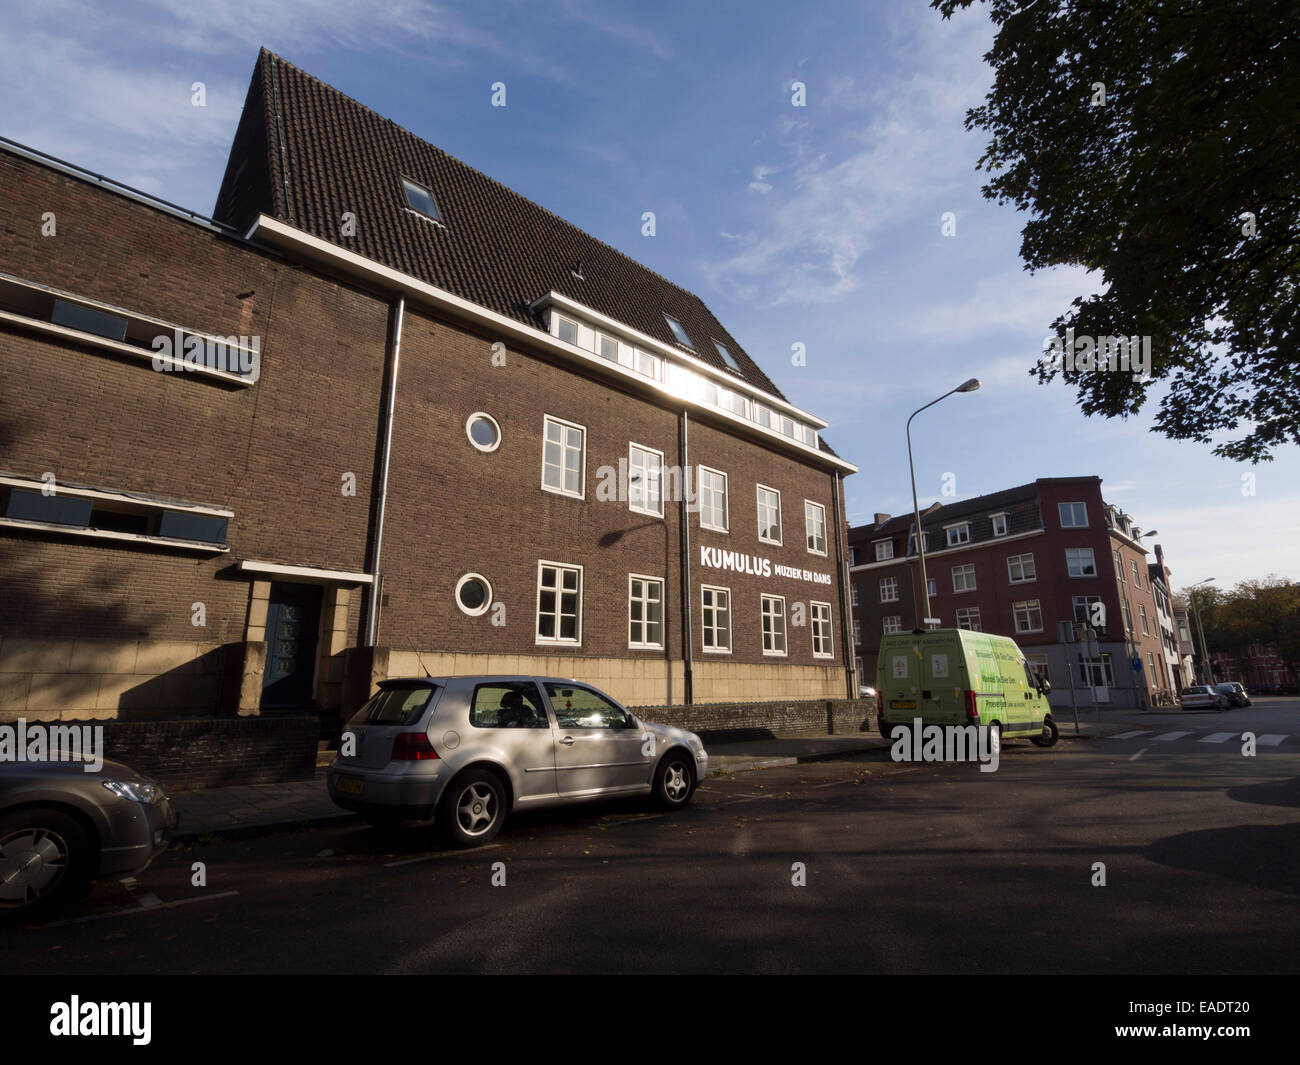 Kumulus music school in Maastricht, The Netherlands - Stock Image